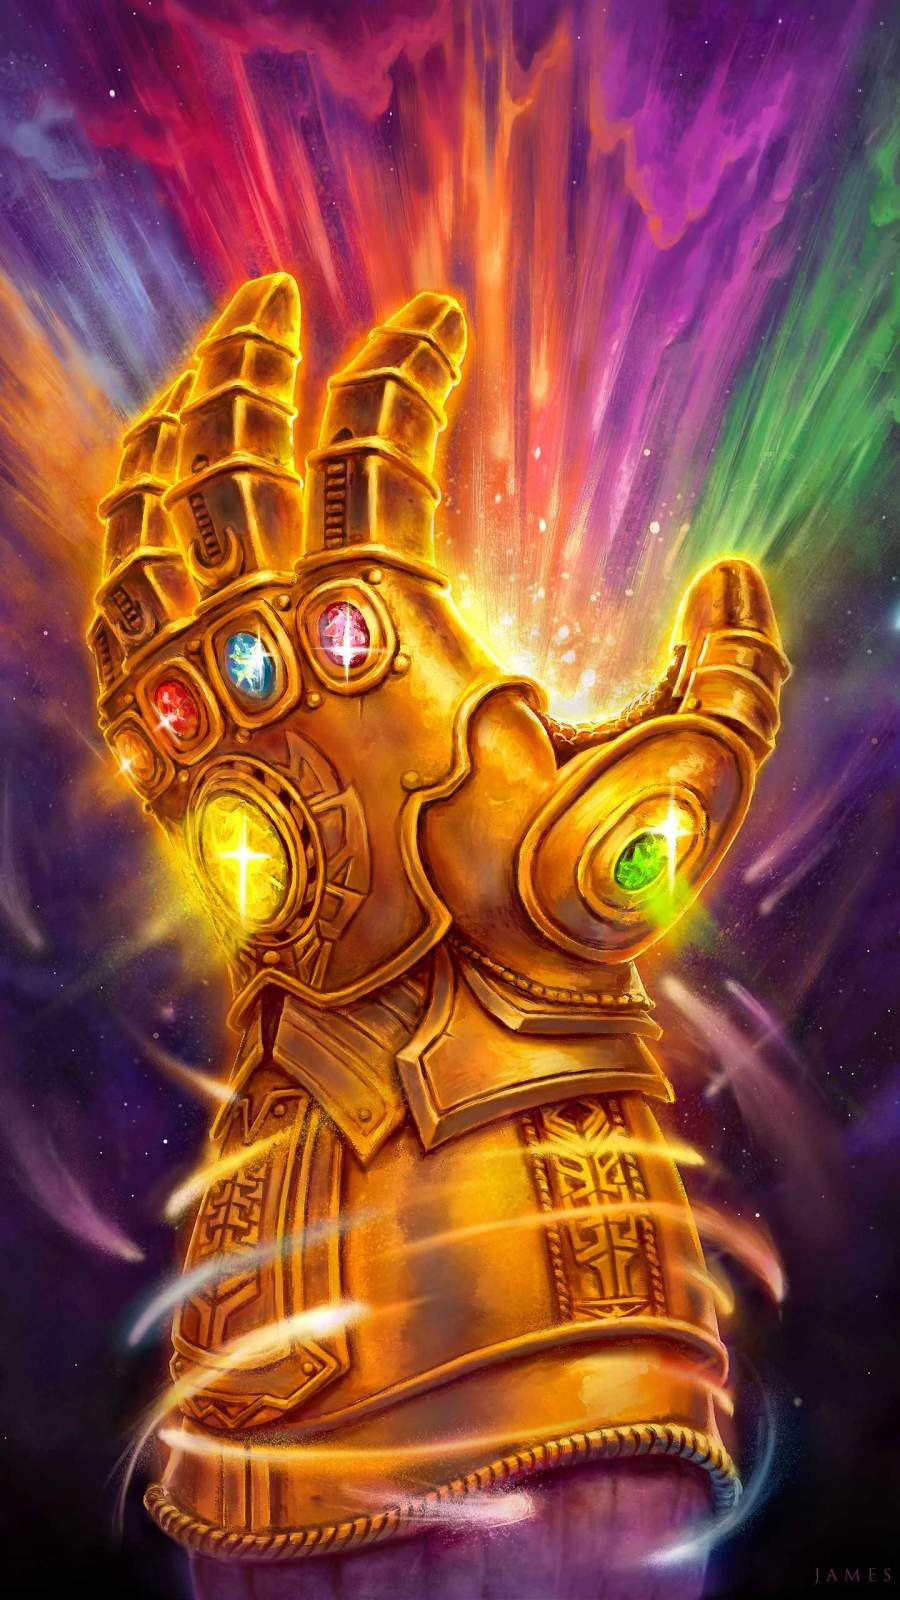 Cute Iphone Wallpapers For Girls Infinity Gauntlet Art Iphone Wallpaper Iphone Wallpapers